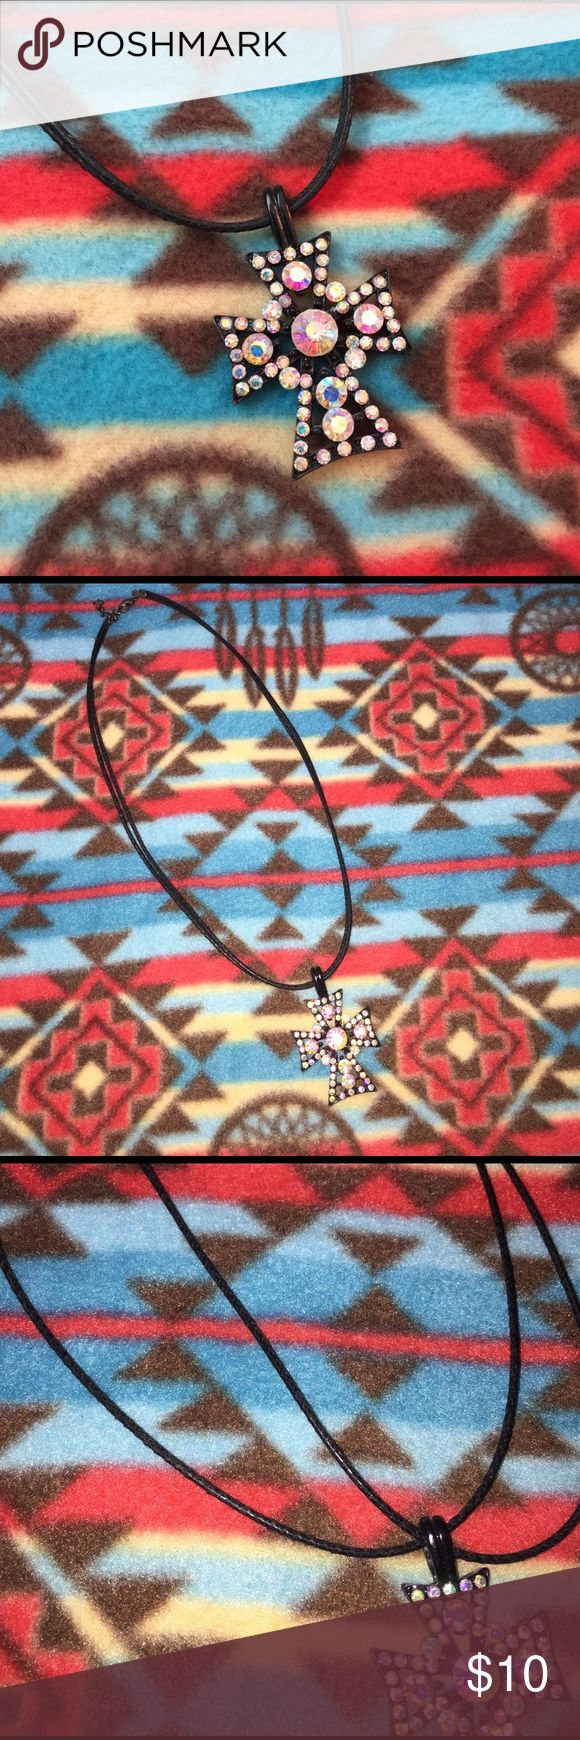 Black Rhinestone Cross Necklace Black Rhinestone Cross Necklace. Rhinestones have iridescent quality that throws various colors mainly pinks and blues. Very beautiful necklace in great condition wore a couple of times Jewelry Necklaces